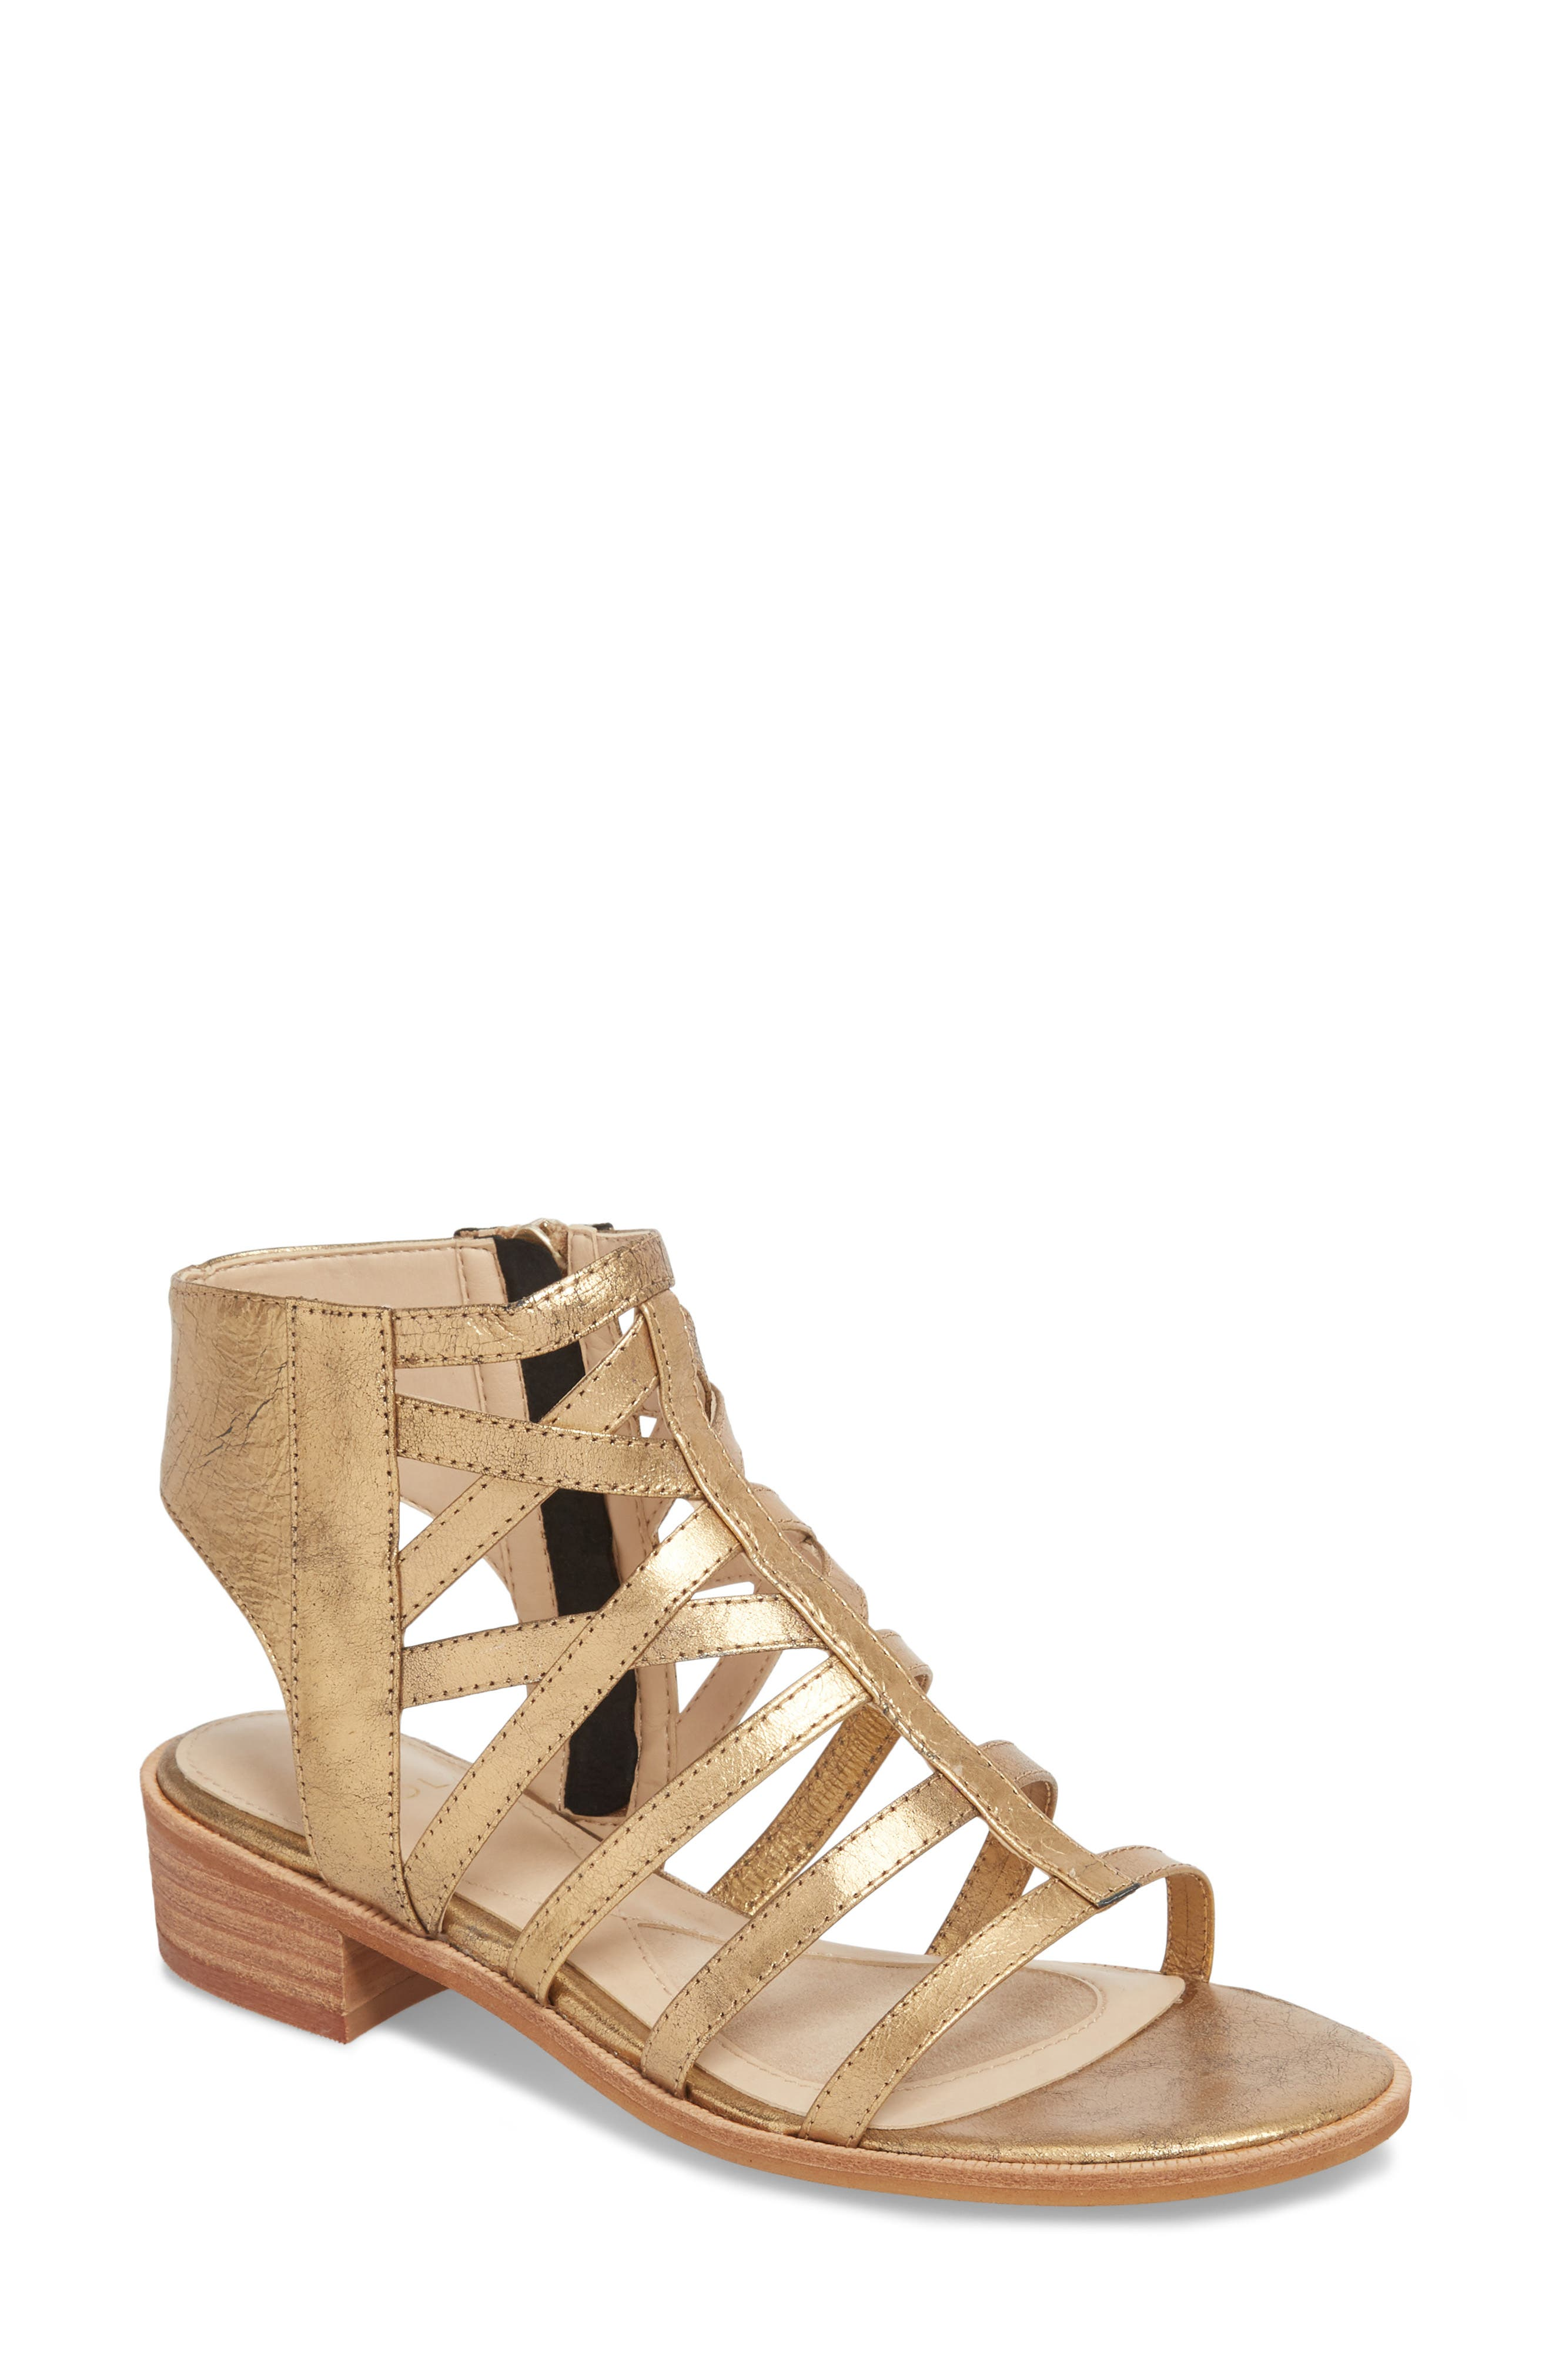 Genesis Cage Sandal,                             Main thumbnail 1, color,                             OLD GOLD LEATHER